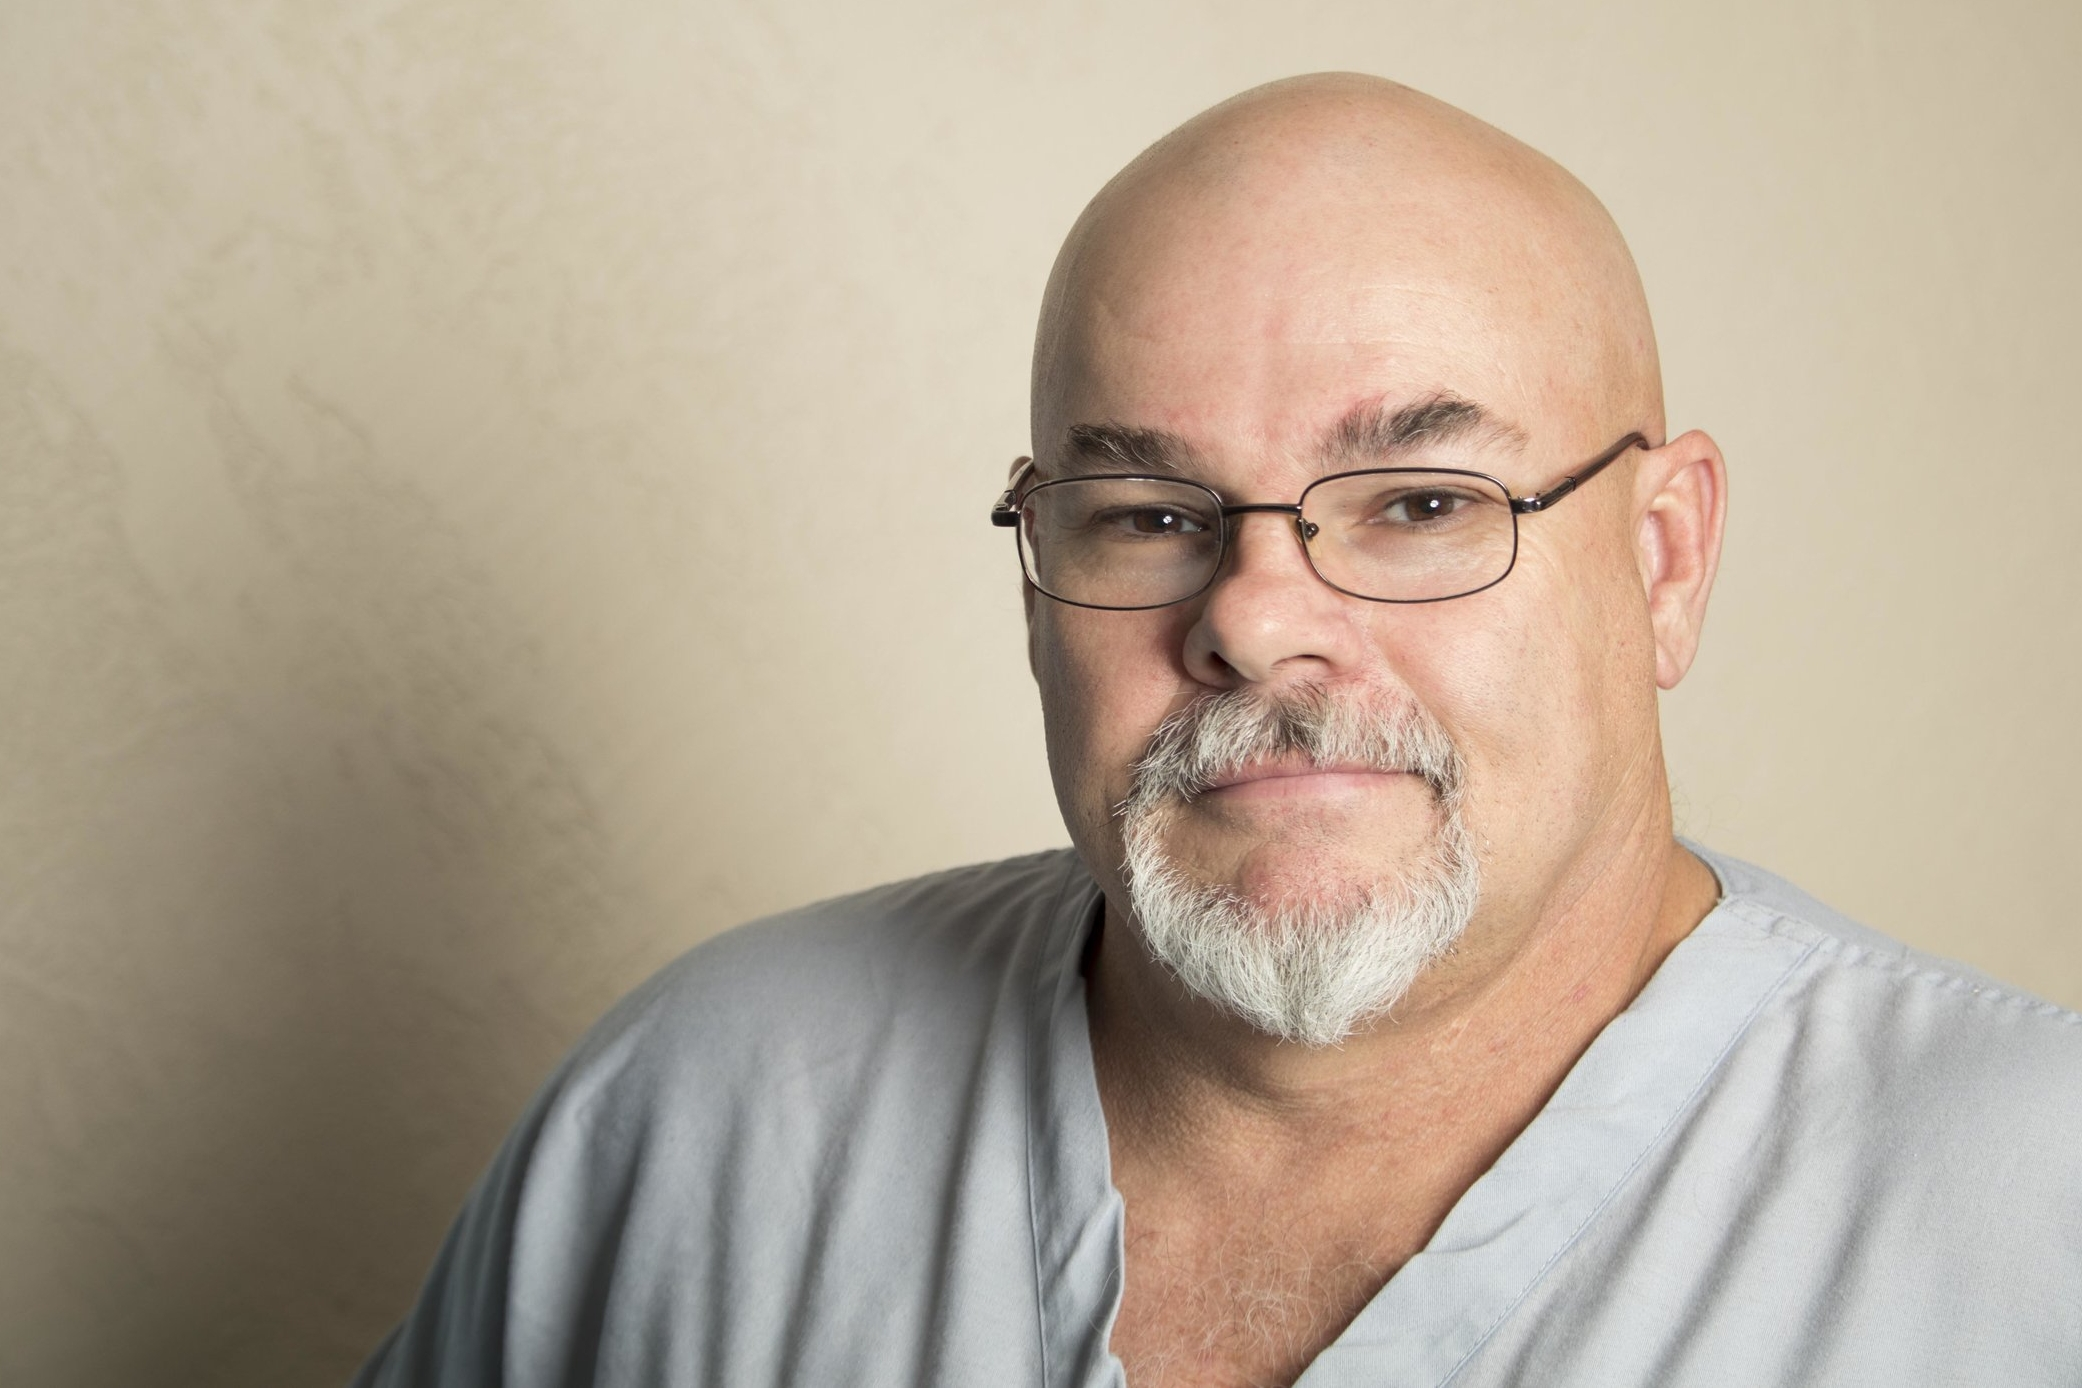 Keith Paschal A Healing Touch Chiropractic and Massage Therapy in Lubbock, TX